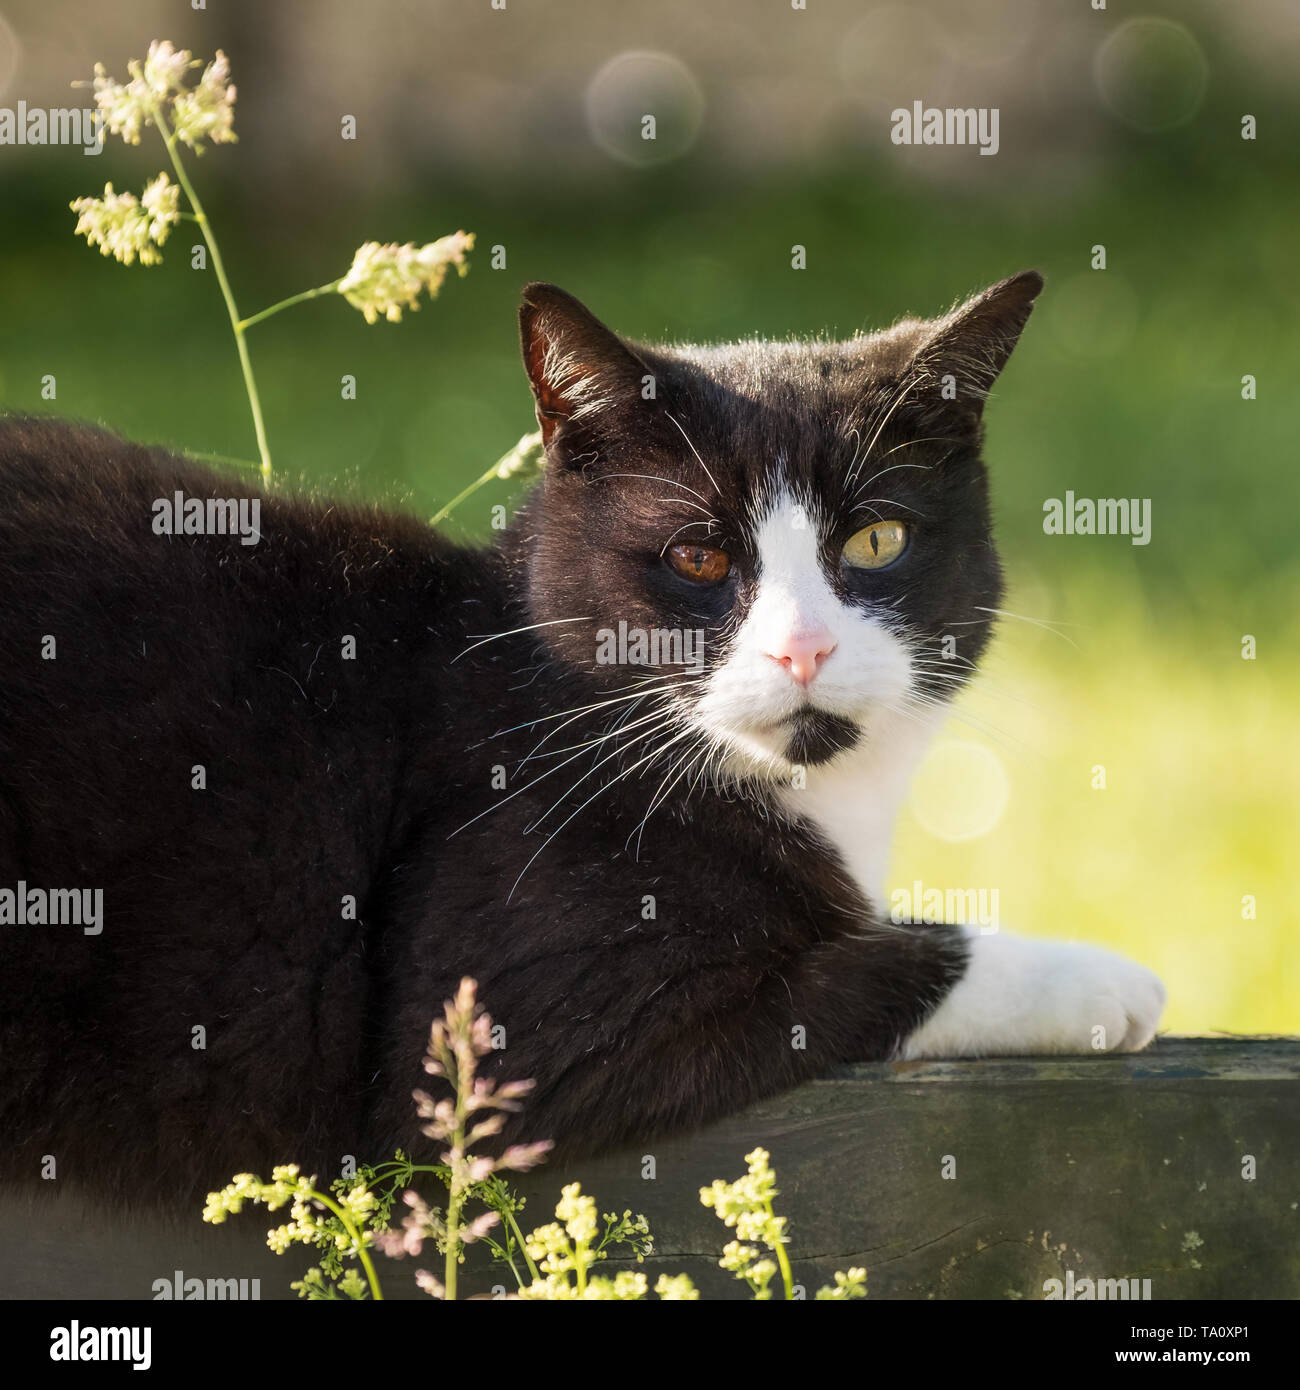 portrait of black and white cat with bicolored eyes relaxing in nature Stock Photo